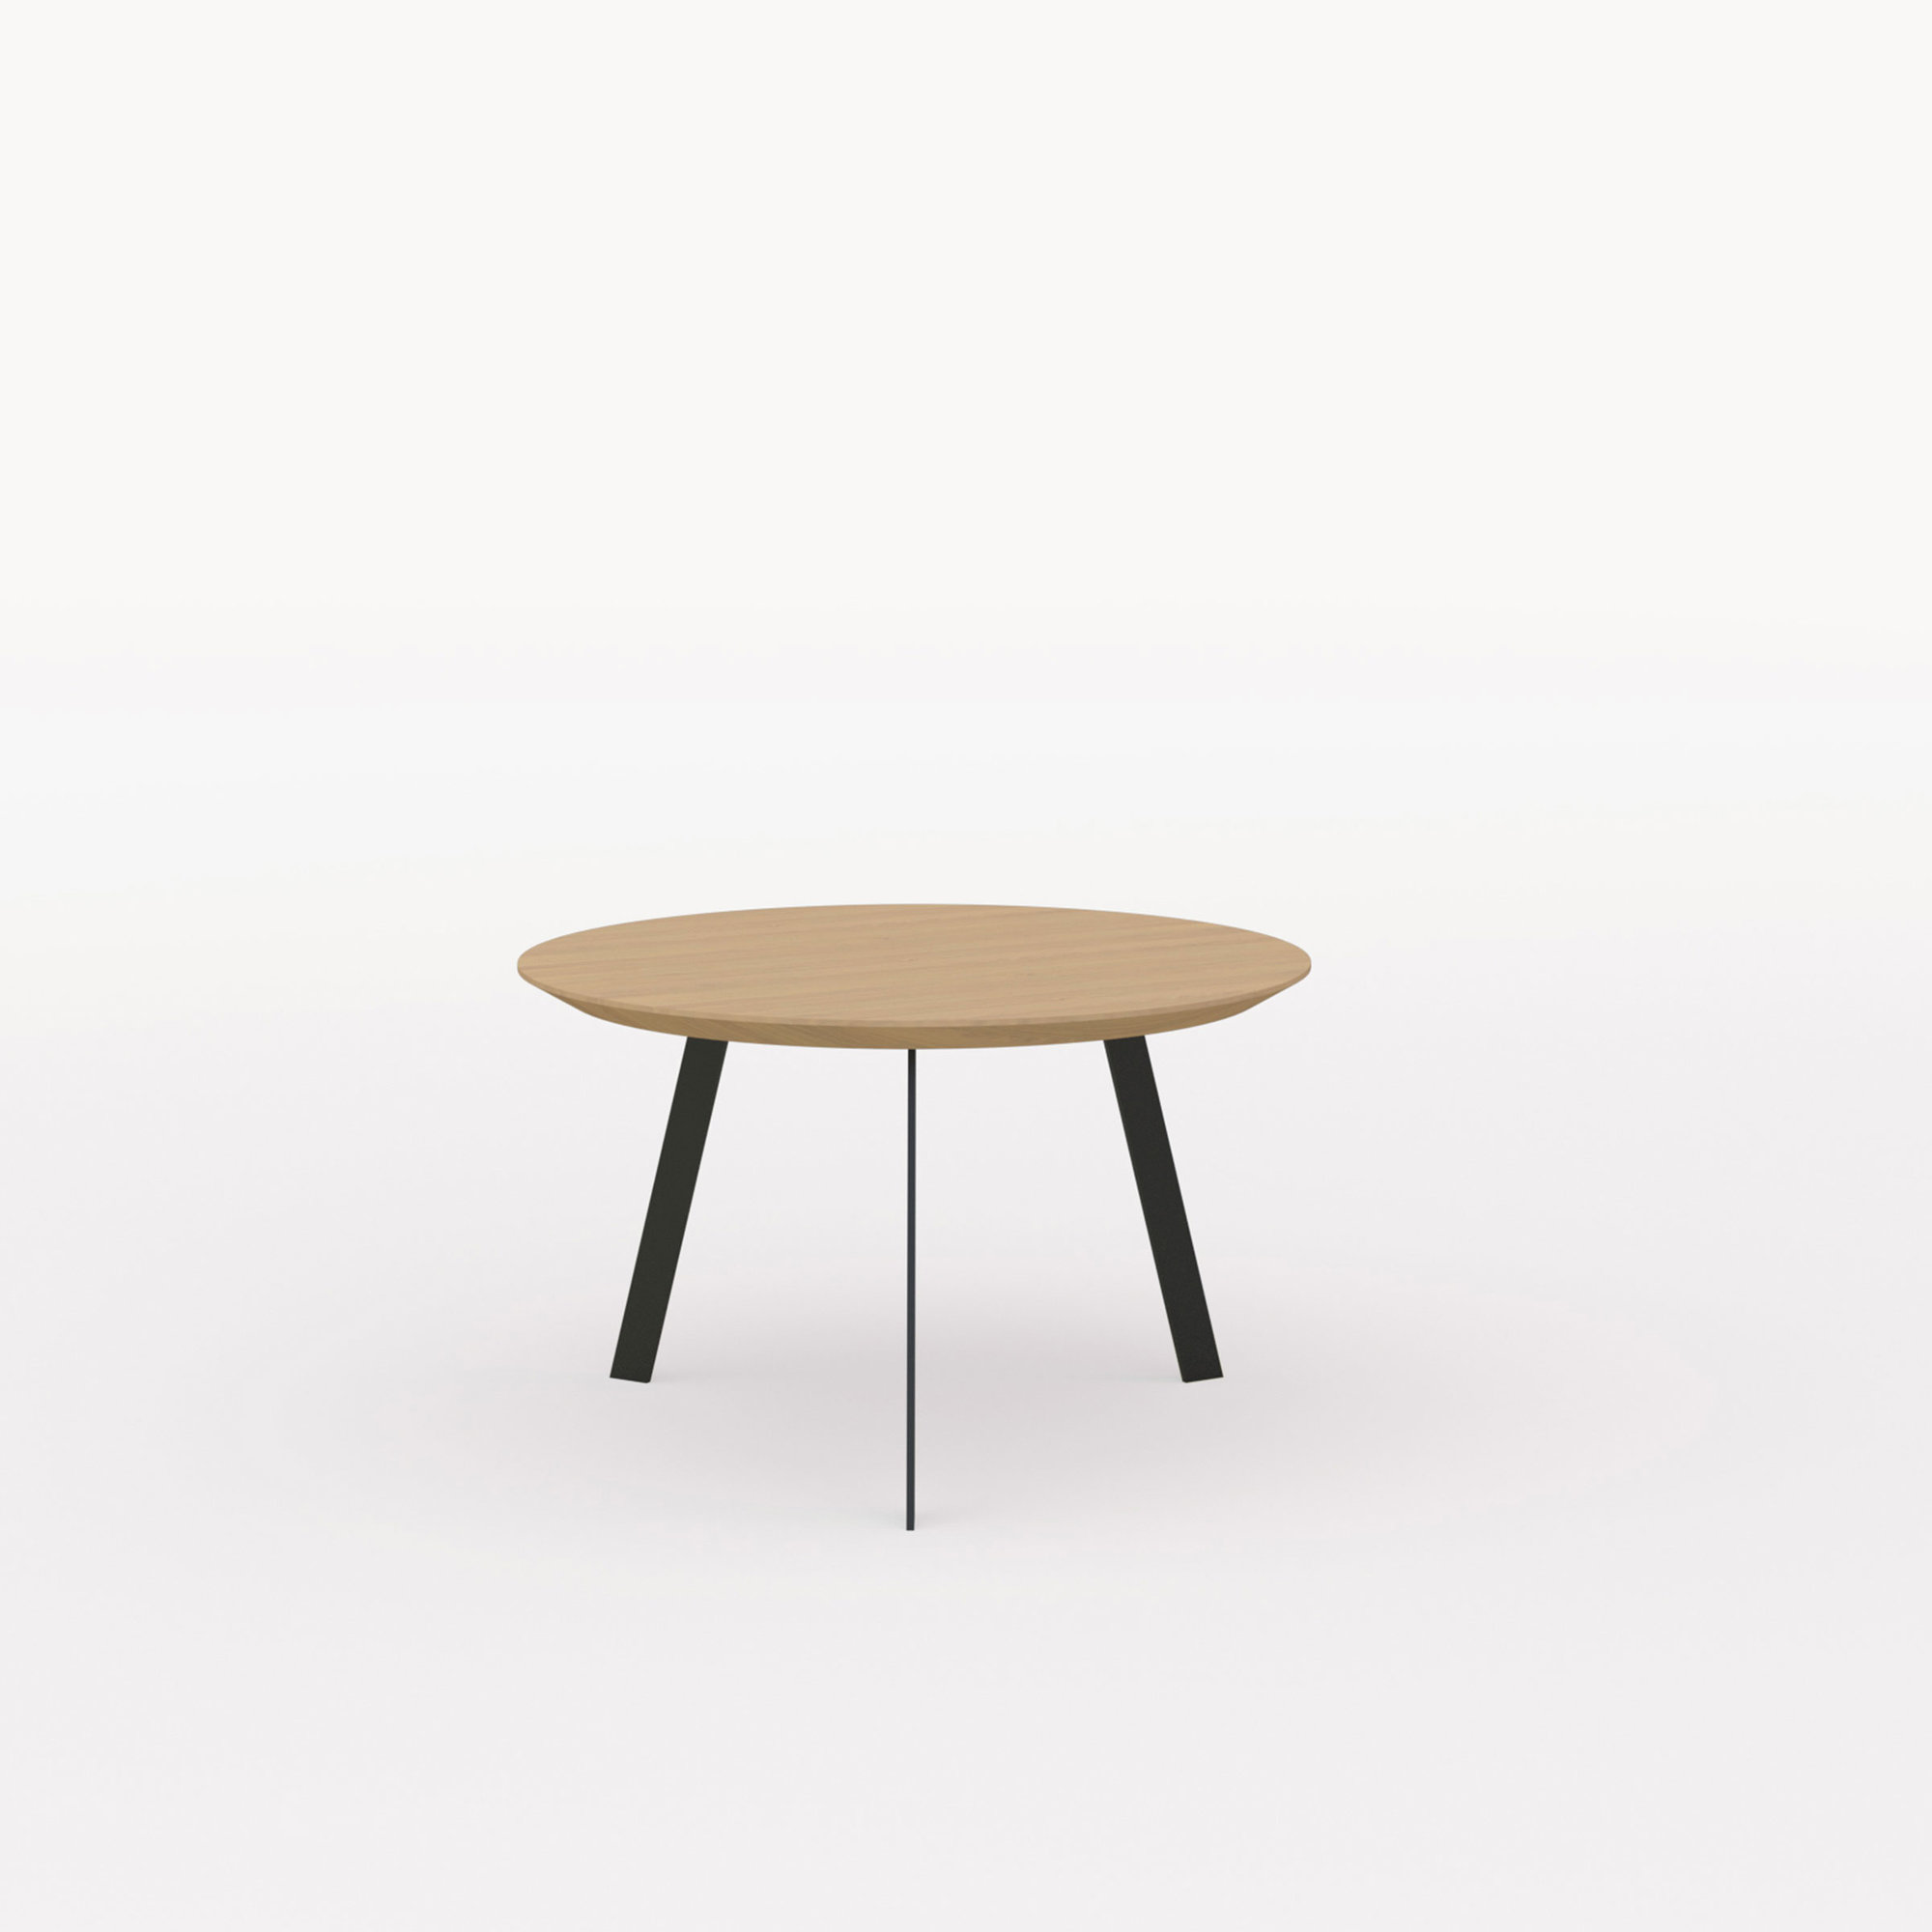 Design salontafel | New Co Coffee Table 70 Round Black | Oak hardwax oil natural light 3041 | Studio HENK | Listing_image